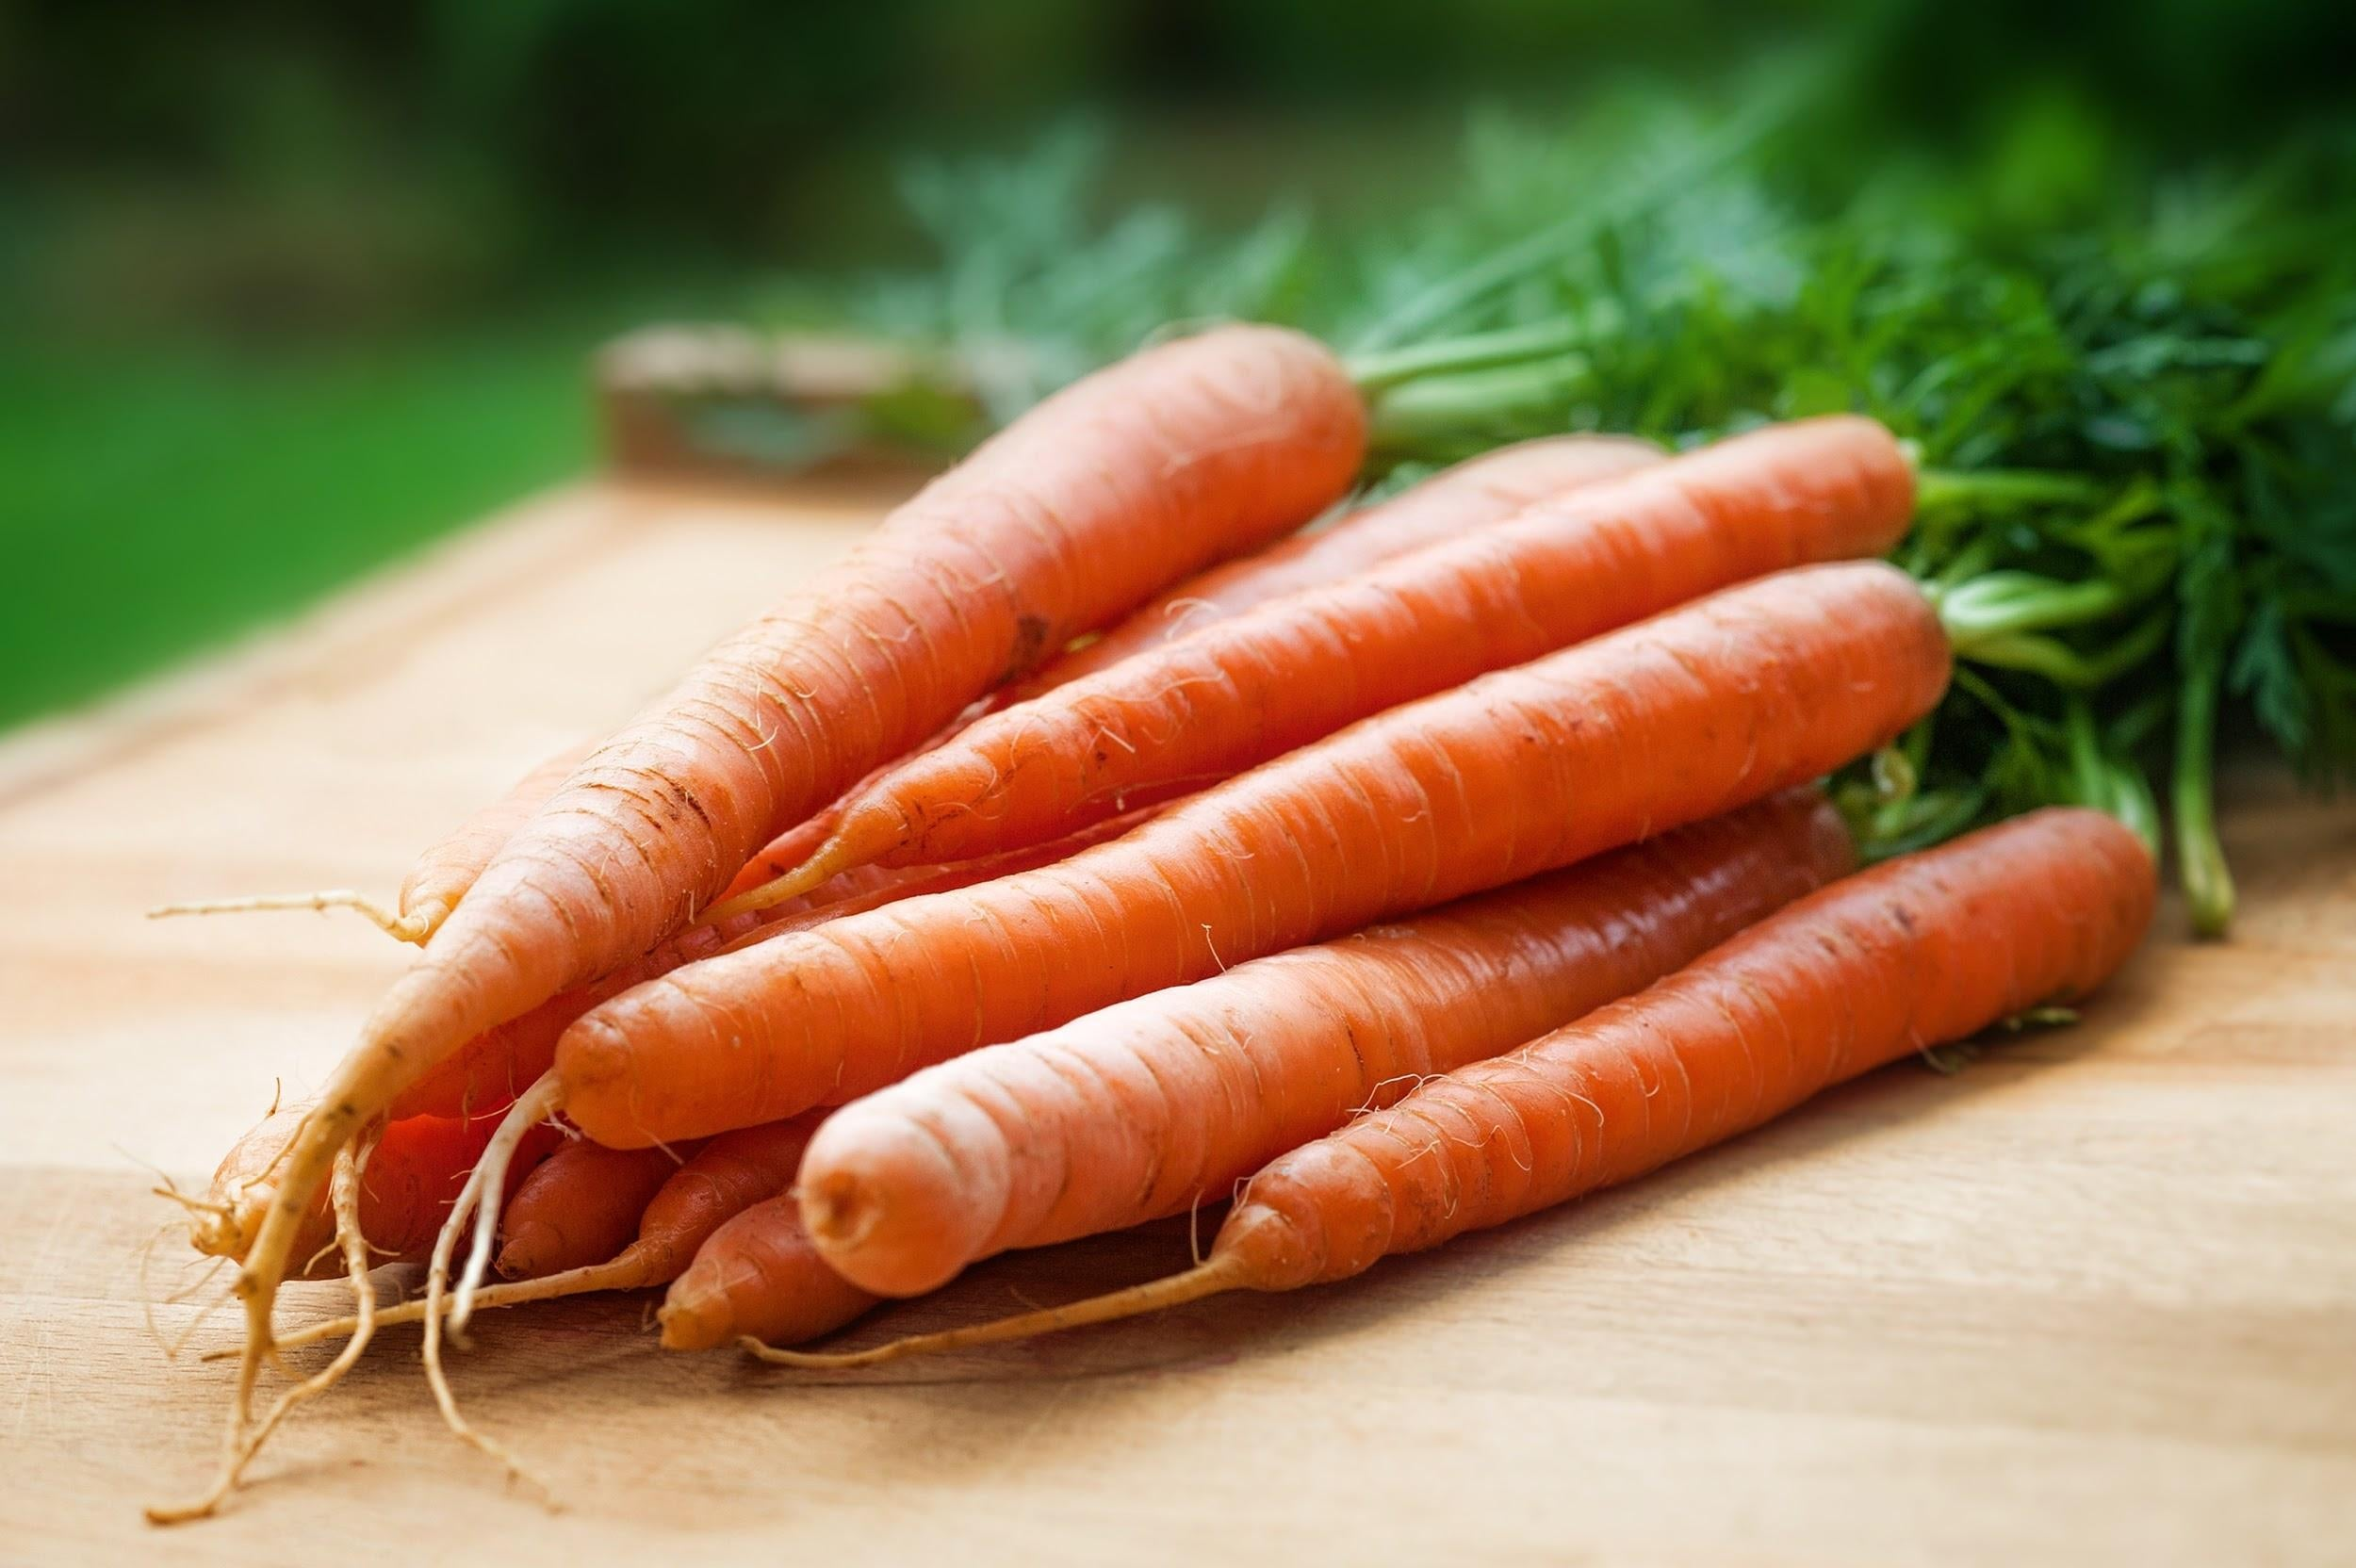 carrots: which vegetables do studies show are the best for you